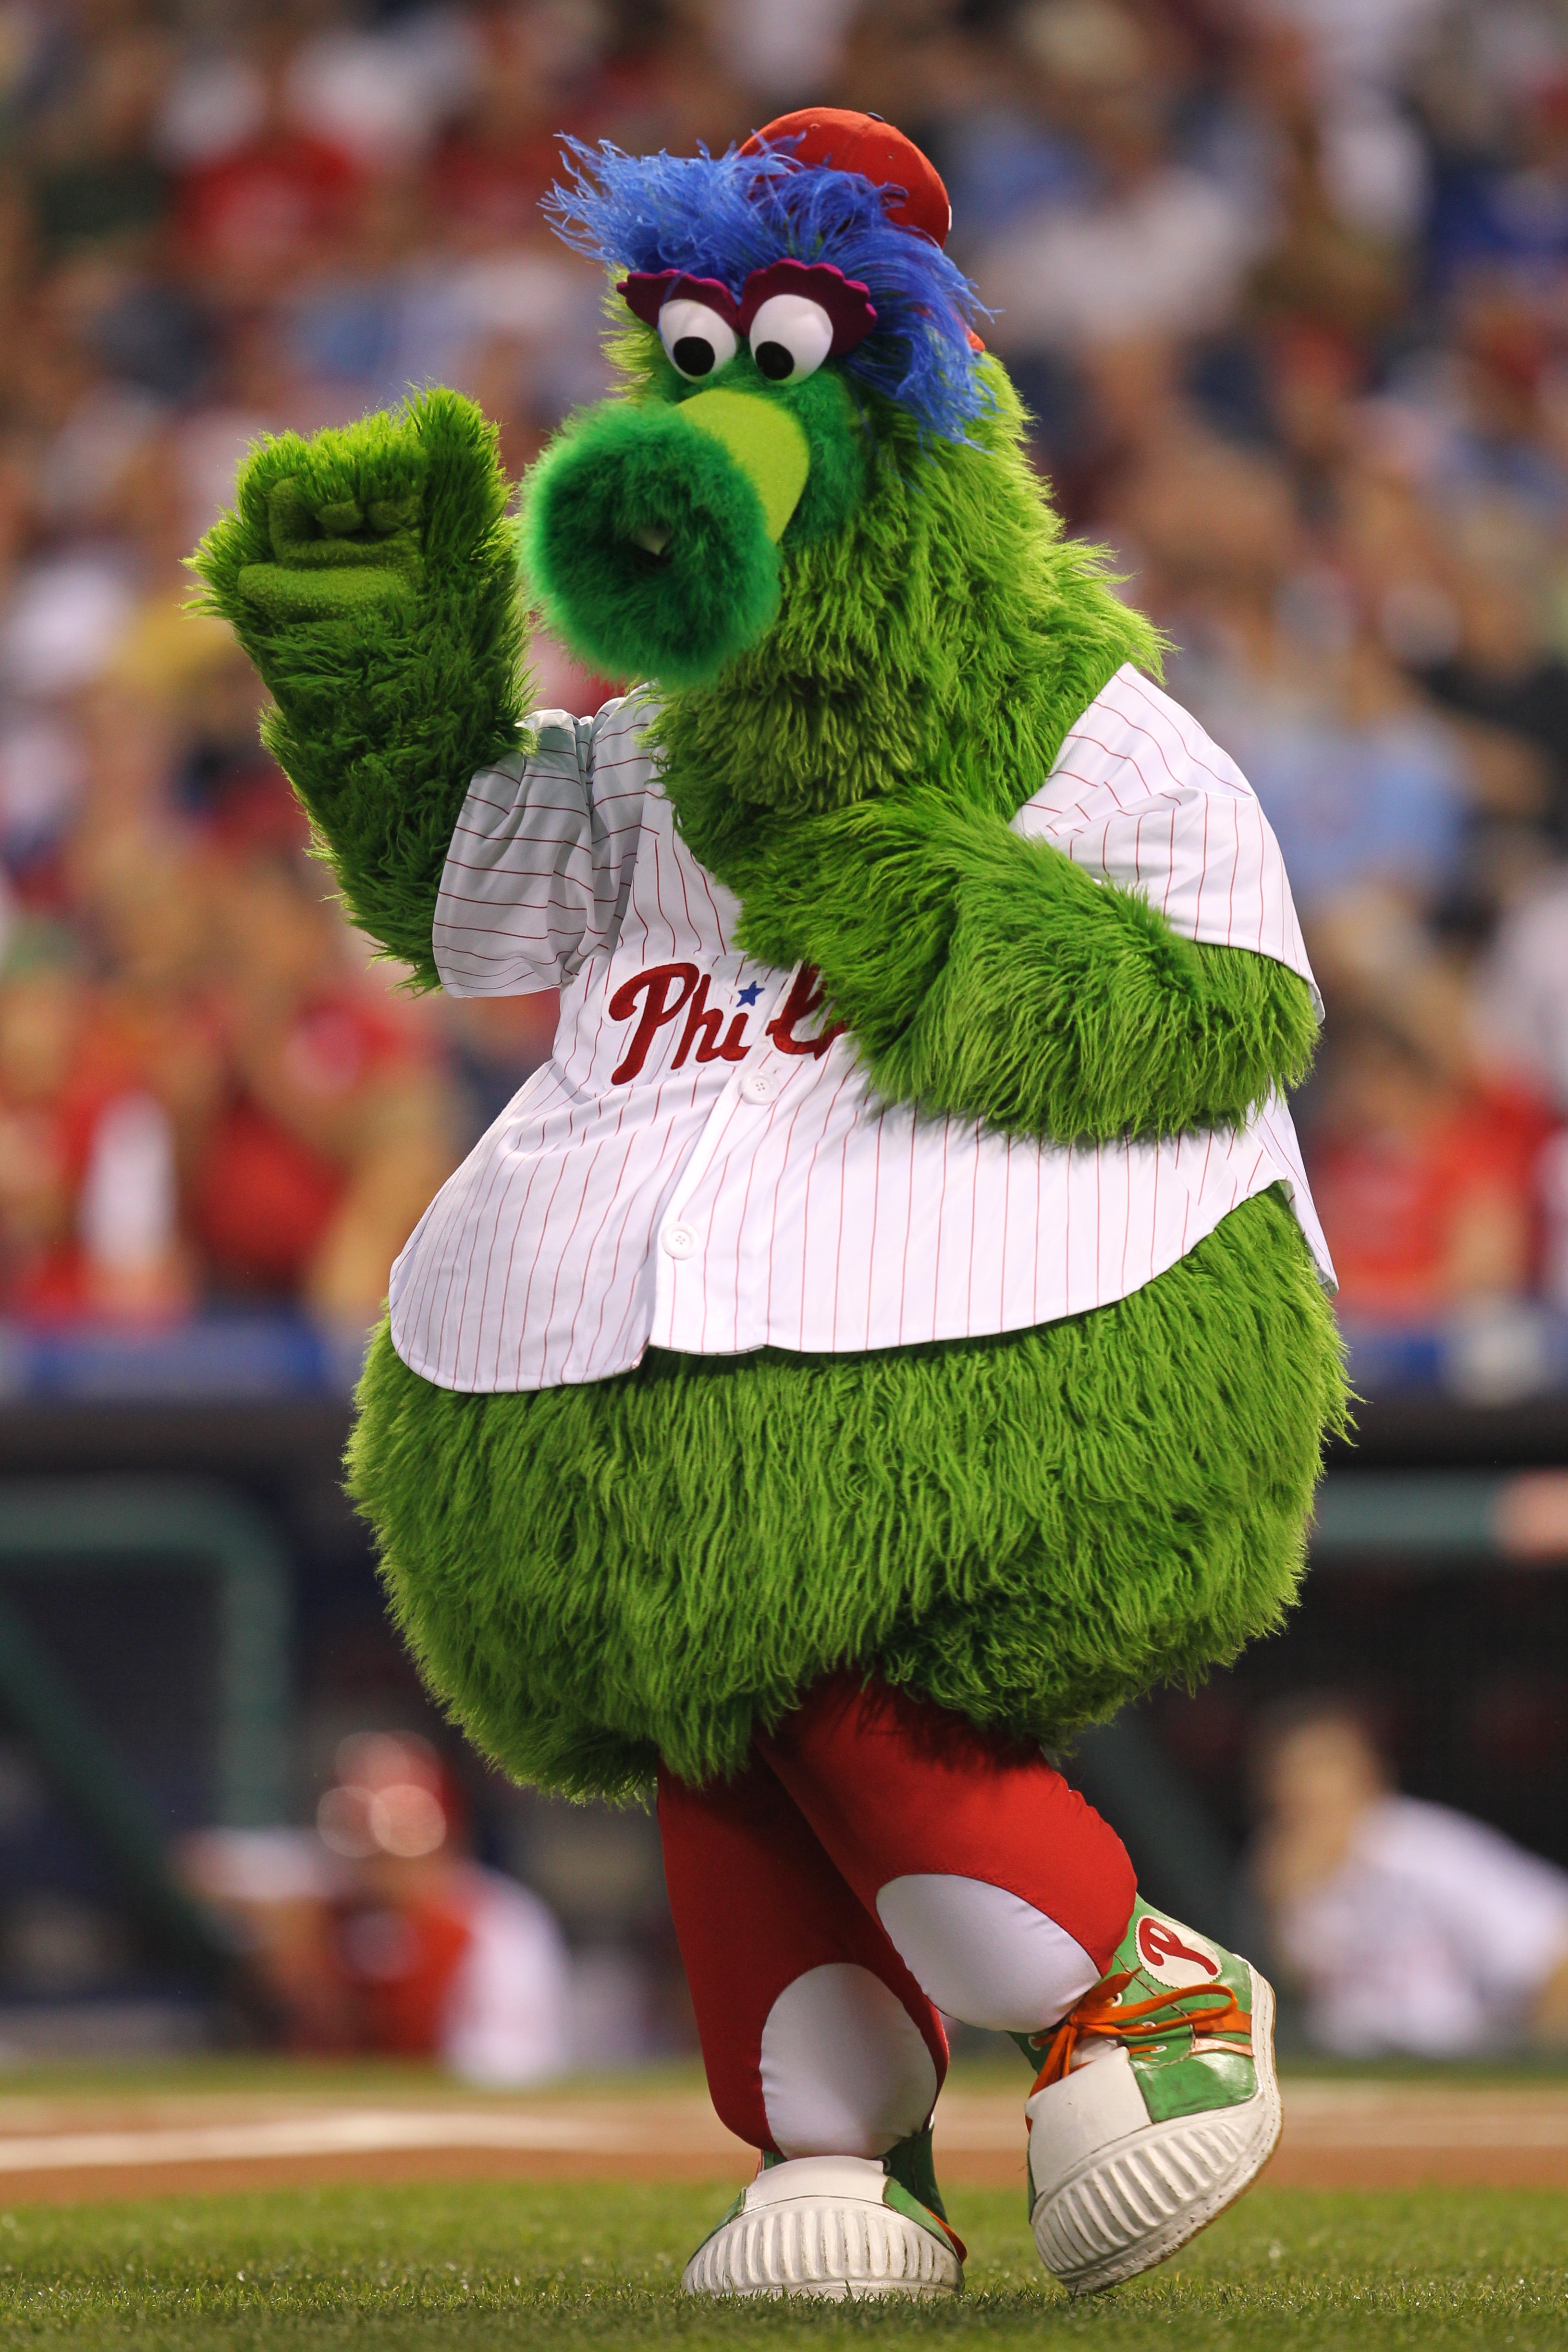 PHILADELPHIA - MAY 2: The Phillie Phanatic performs during the game between the New York Mets and the Philadelphia Phillies at Citizens Bank Park on May 2, 2010 in Philadelphia, Pennsylvania. The Phillies won 11-5. (Photo by Hunter Martin/Getty Images)